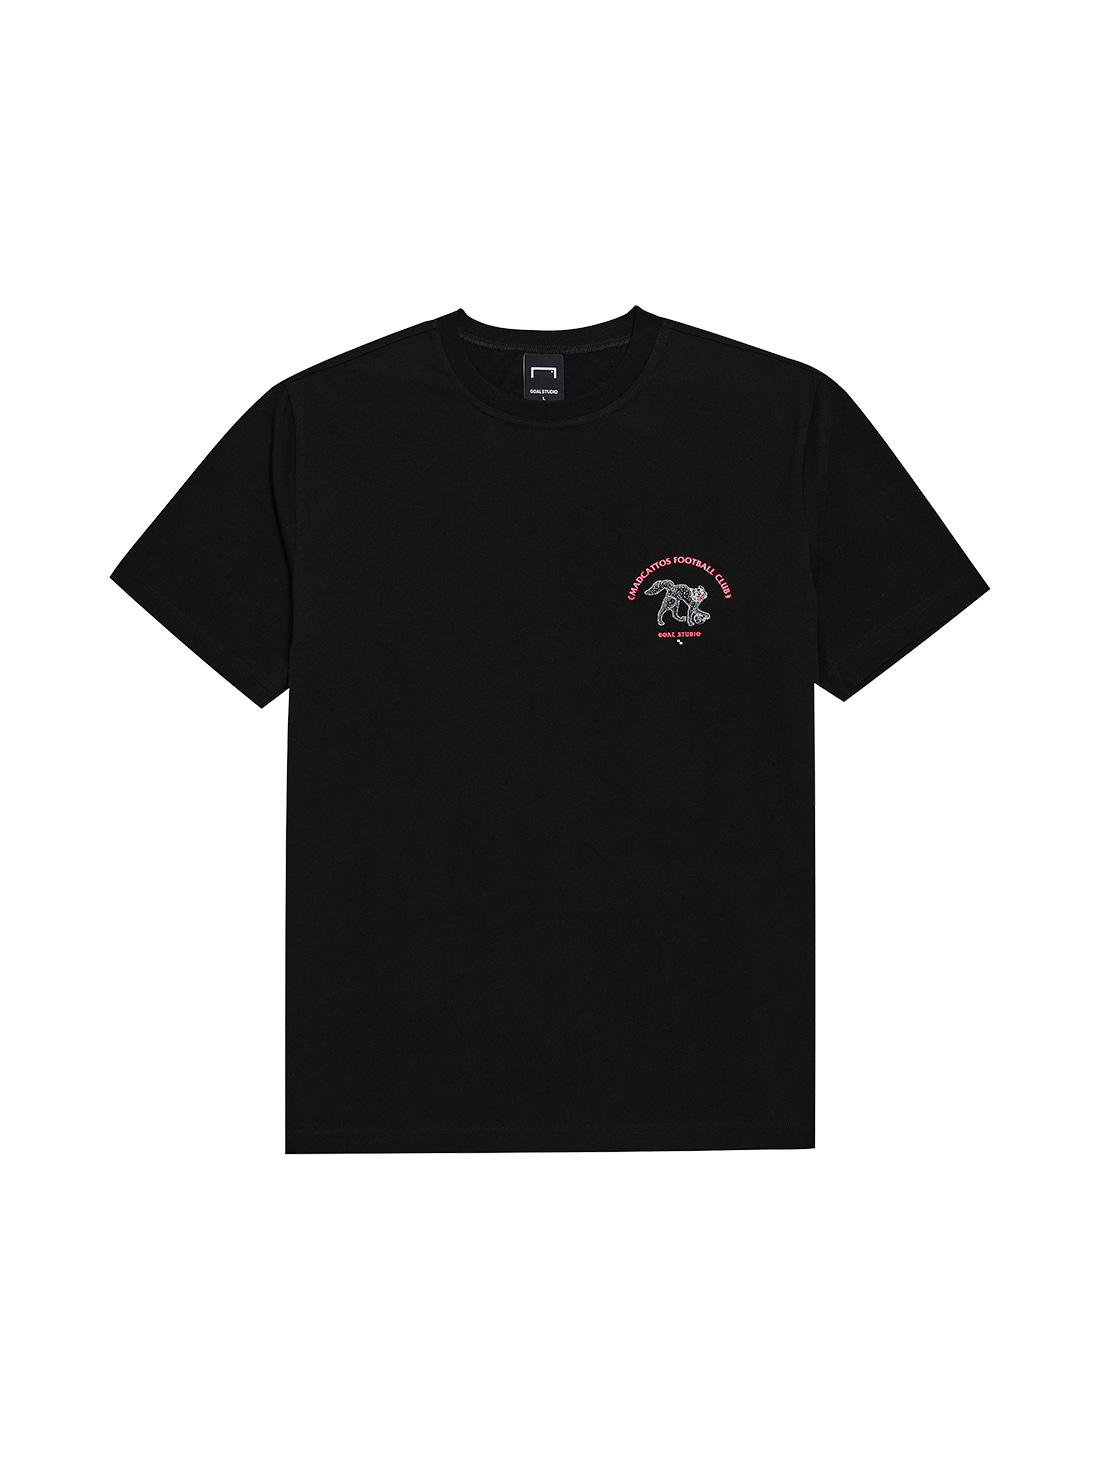 MC SMALL FRONT GRAPHIC TEE - BLACK